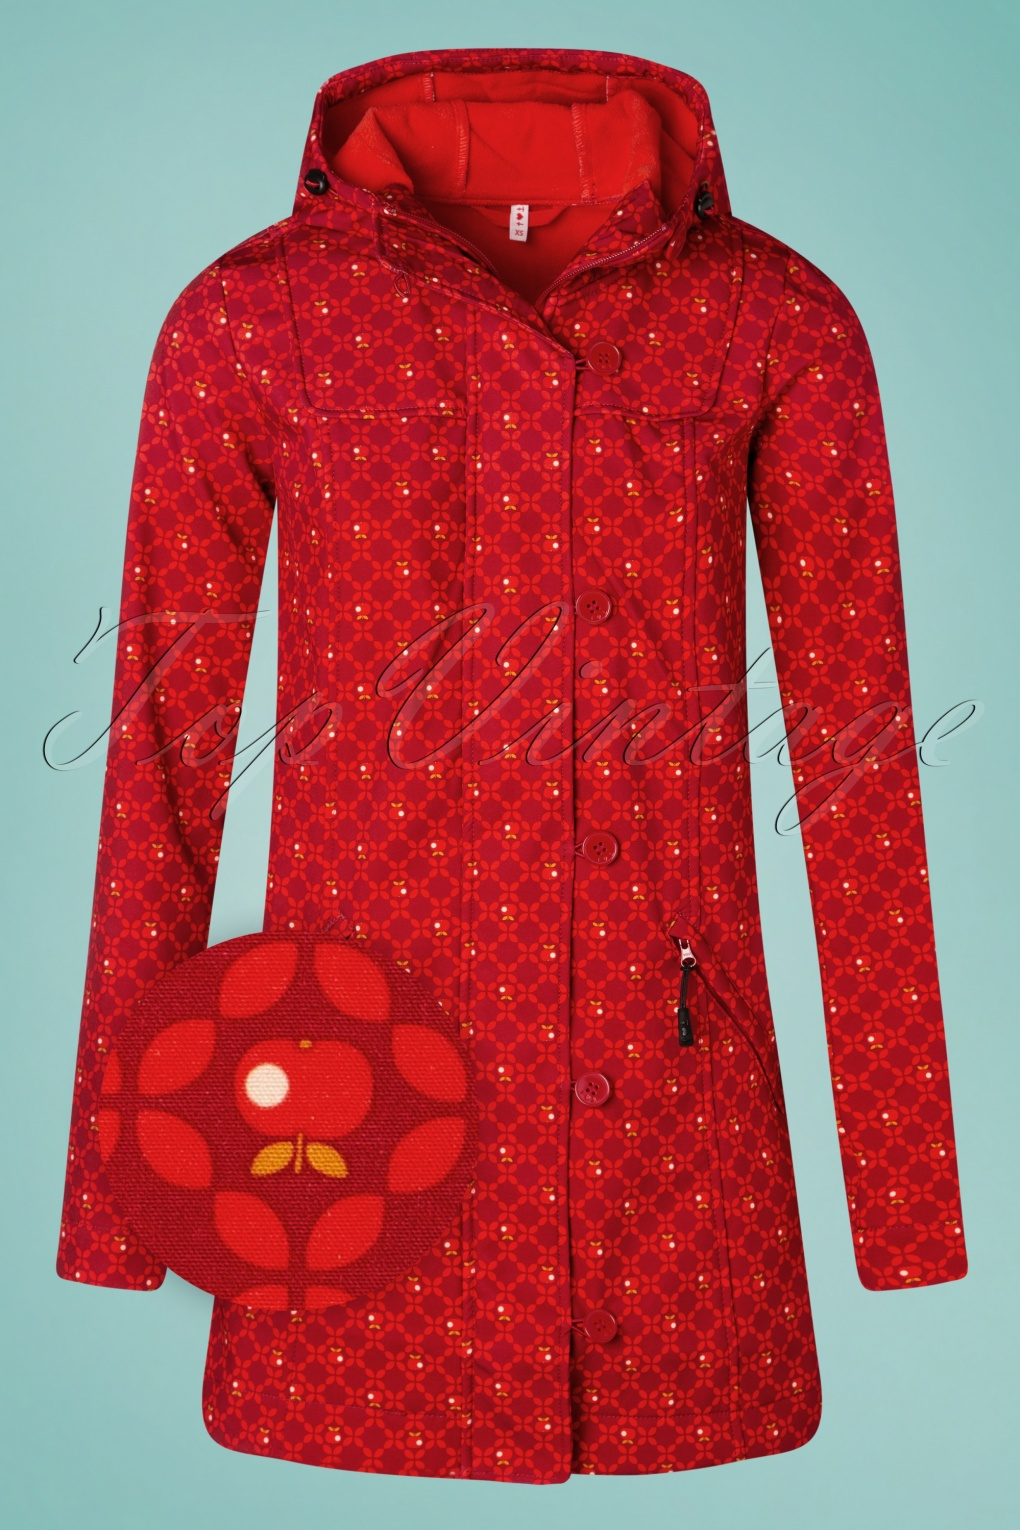 Vintage Coats & Jackets | Retro Coats and Jackets 60s Wild Weather Long Anorak in Sweet Apple Red £128.72 AT vintagedancer.com